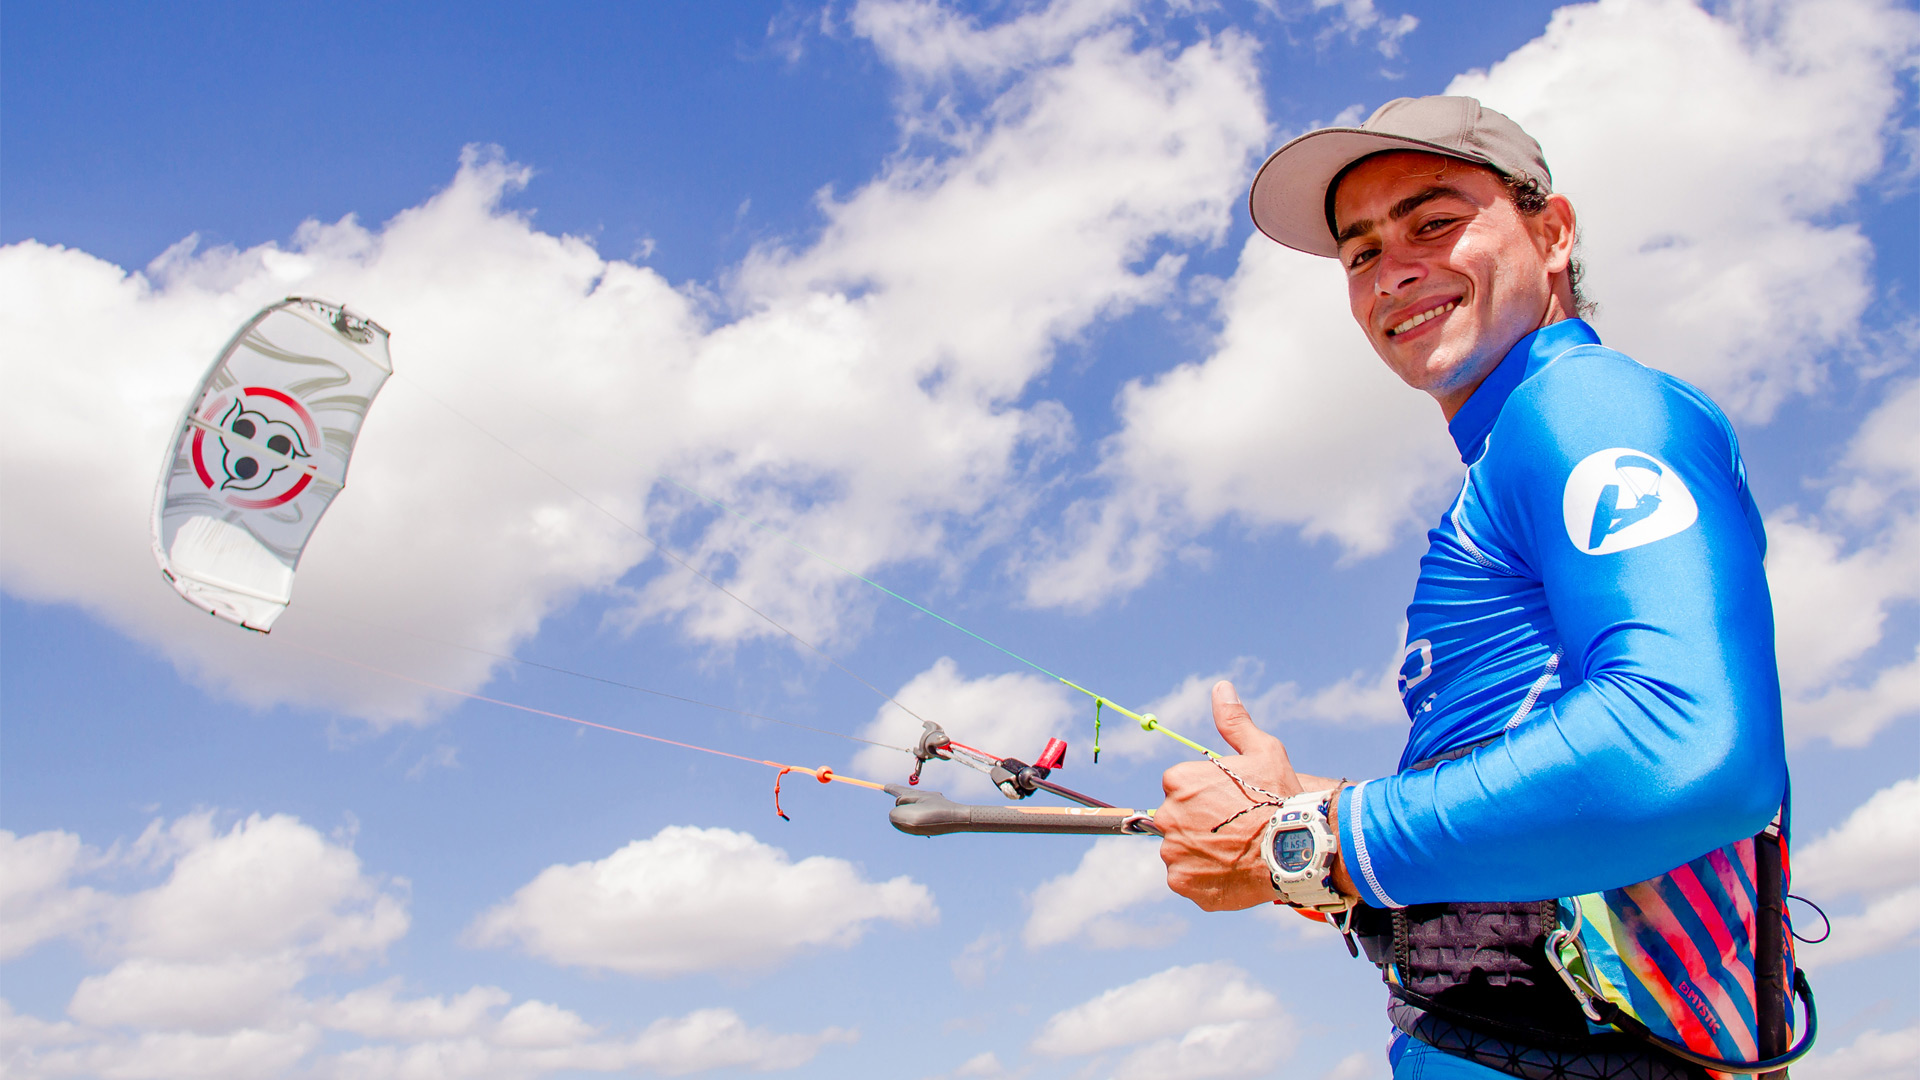 The Ultimate Guide on Why You Should Learn to Kitesurf with Iko